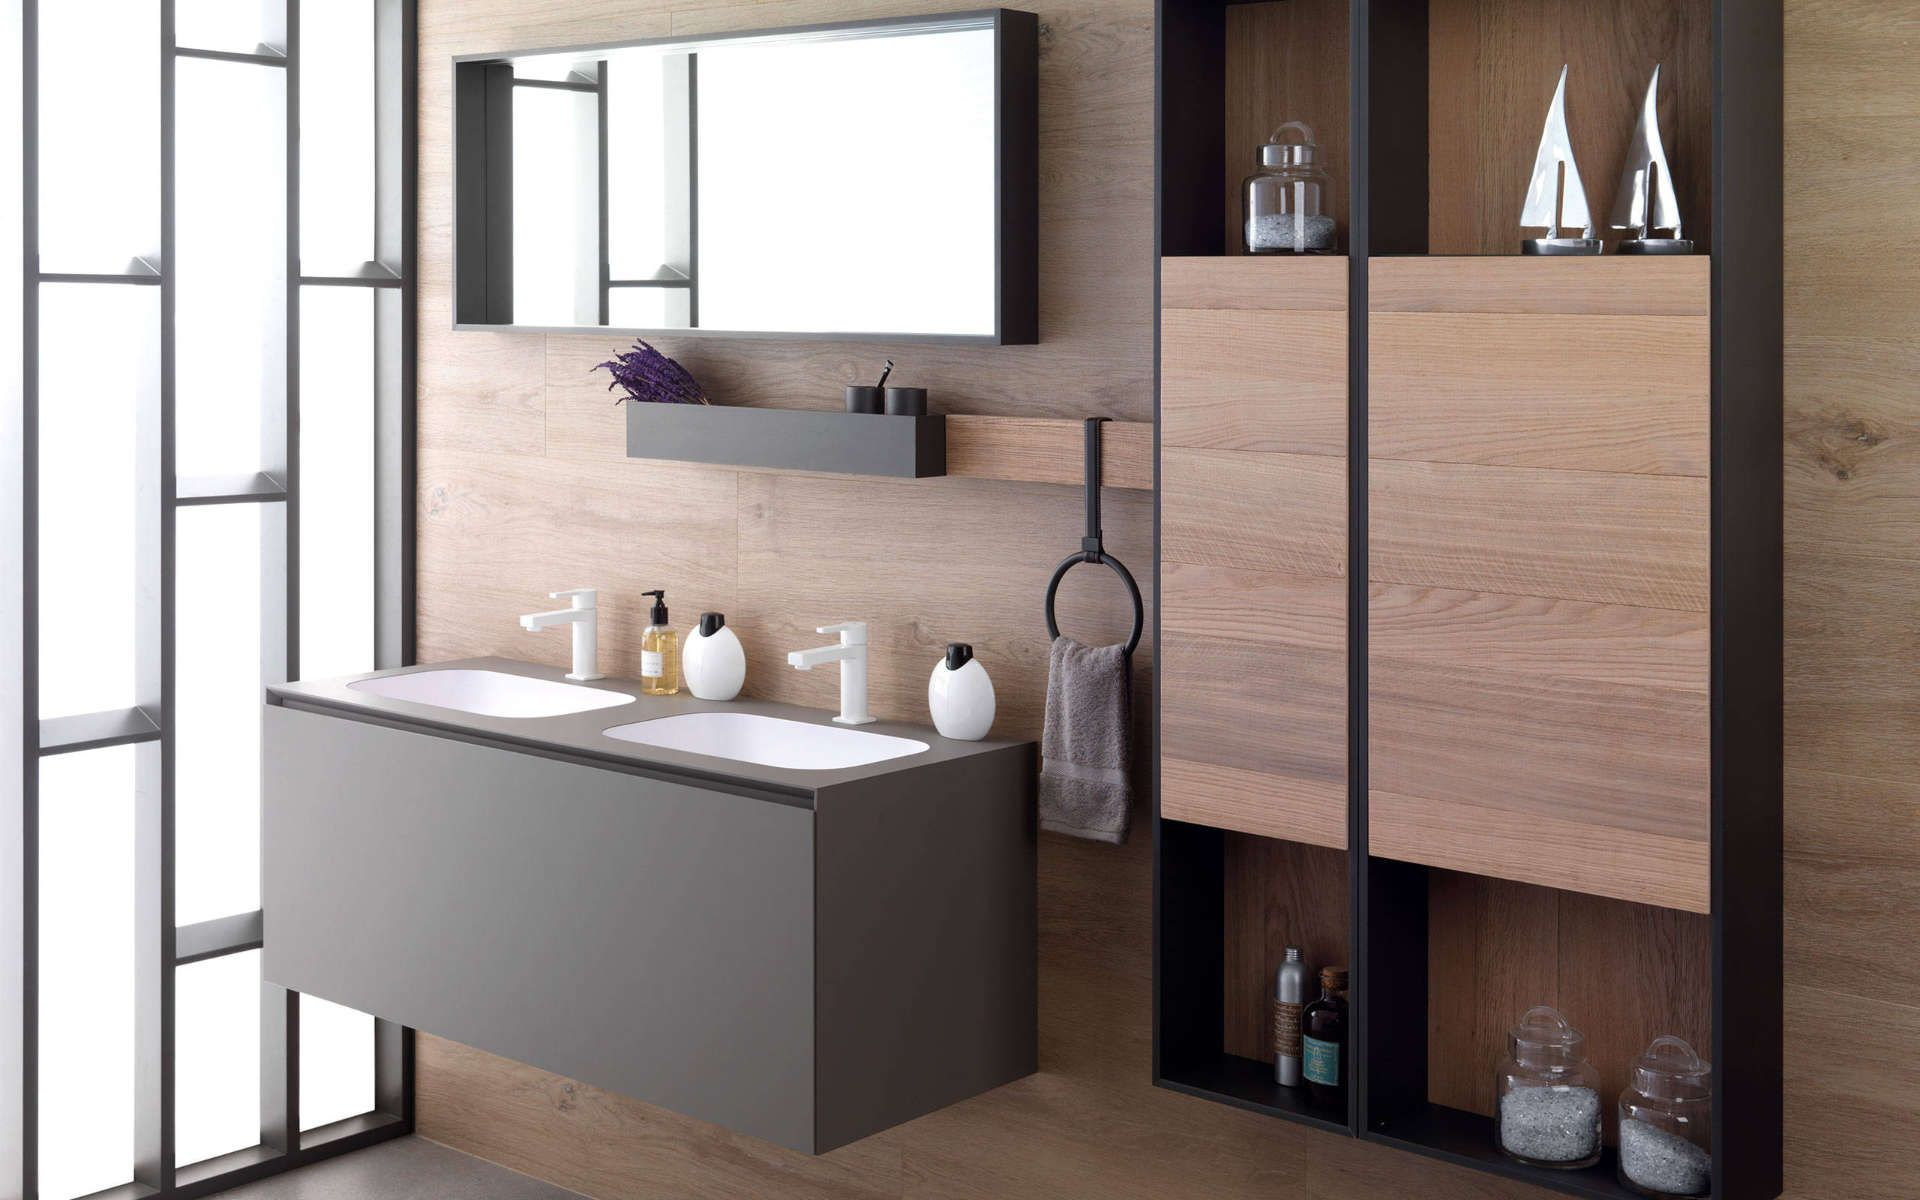 Mobilier De Salle De Bain Meubles De Salle De Bain Porcelanosa Elegant Bathroom Bathroom Design Contemporary Bathroom Furniture